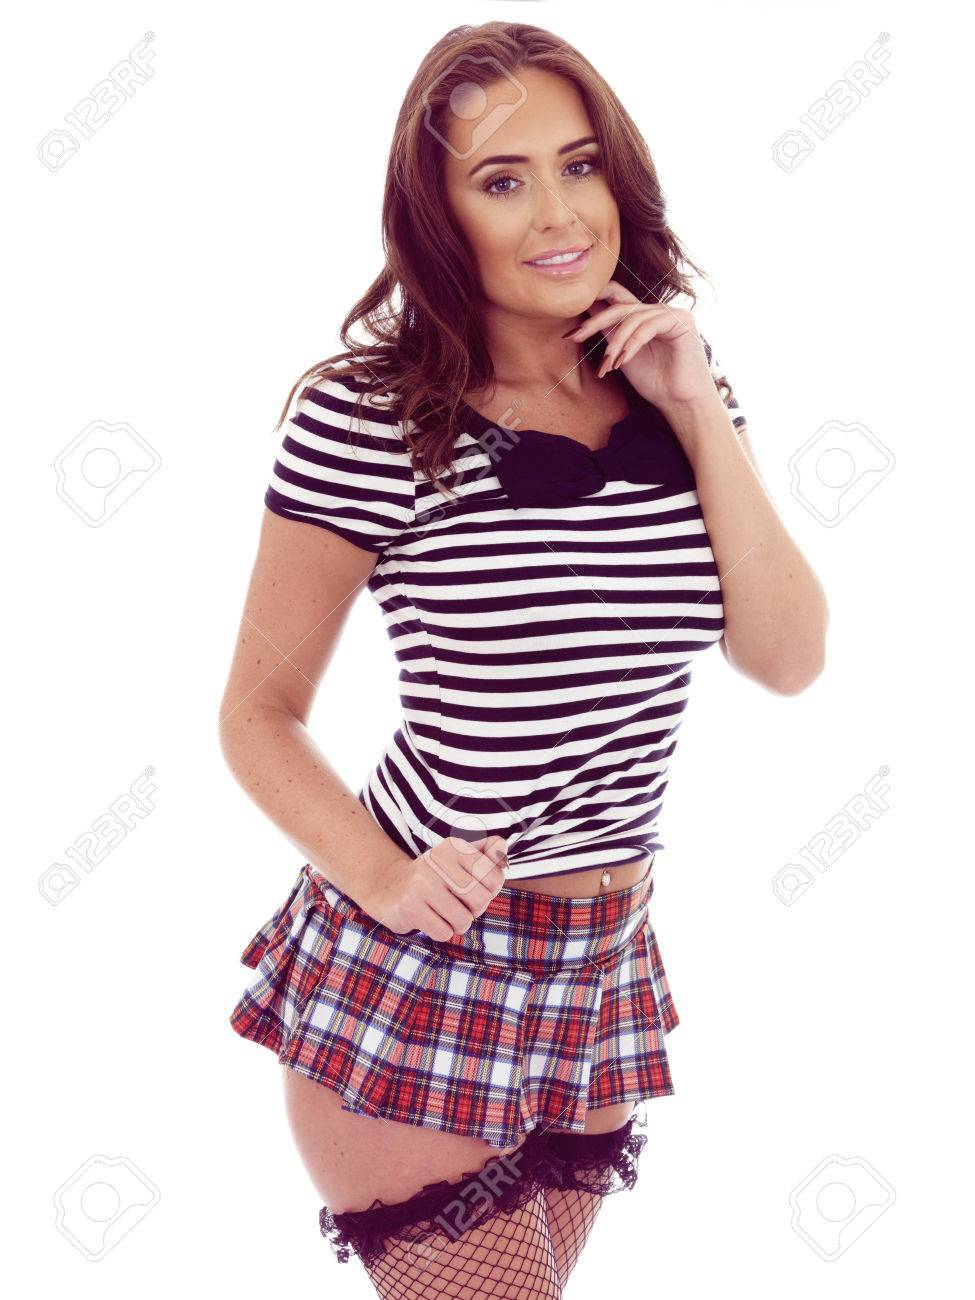 6f54089deb6a Beautiful Young Hispanic Woman Posing in a Very Short Mini Skirt Revealing  Her Stocking Tops Against